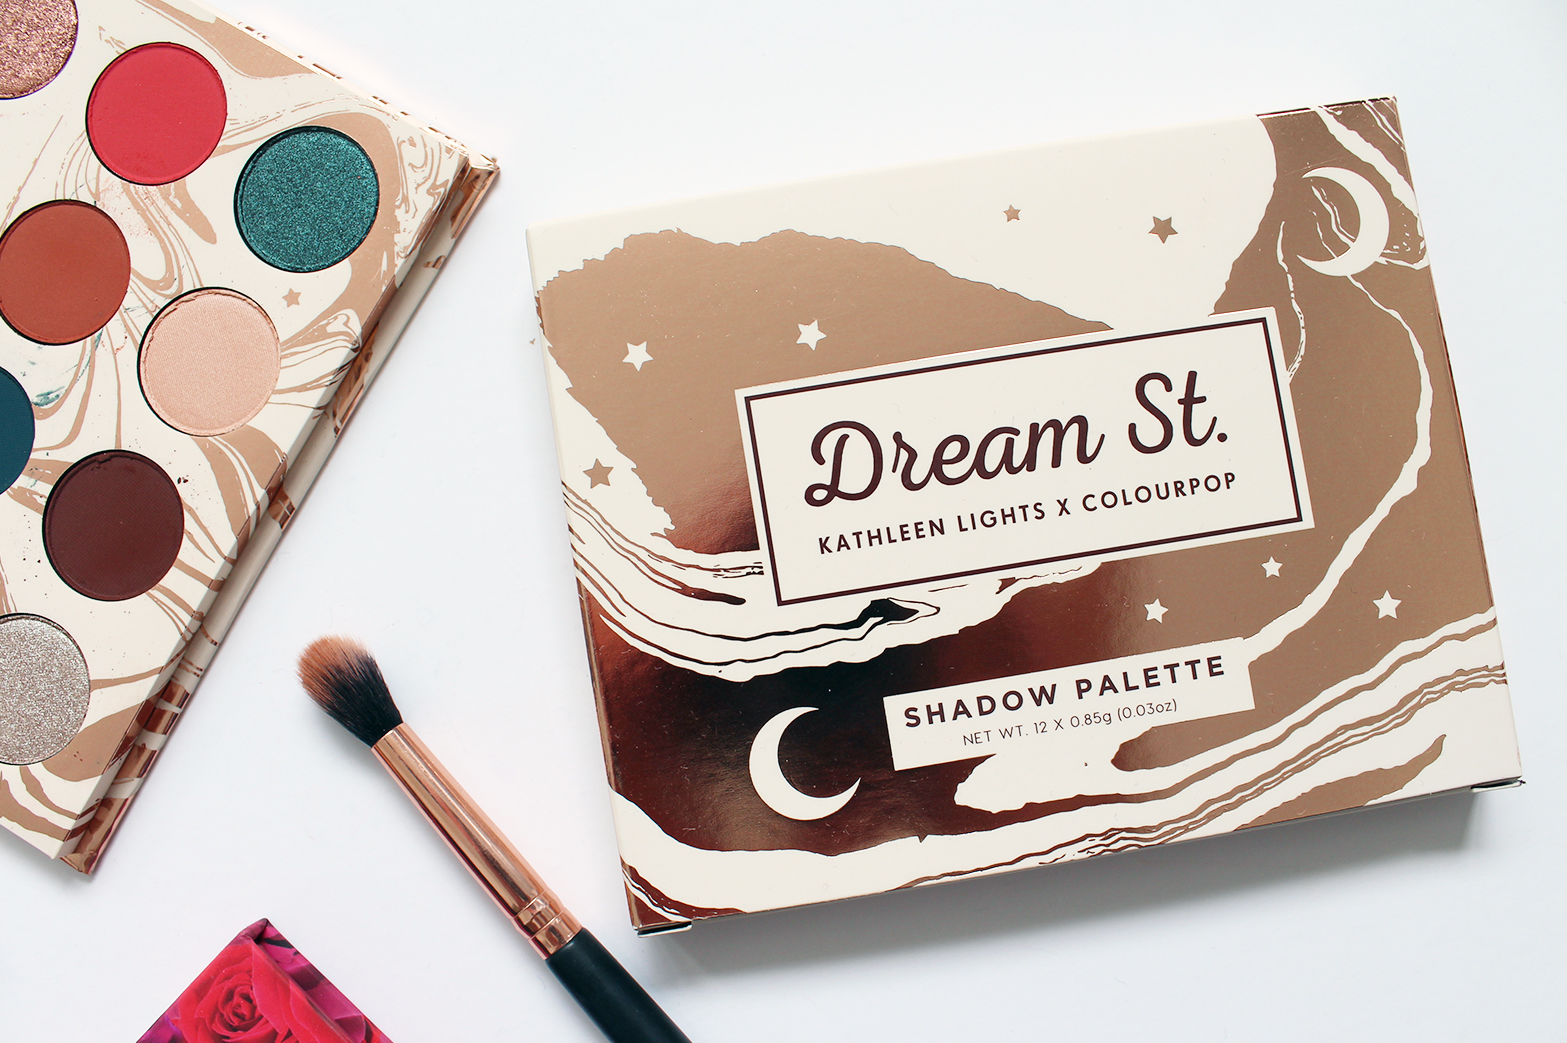 COLOURPOP | Kathleen Lights Dream St Pressed Shadow Palette - Review + Swatches - CassandraMyee